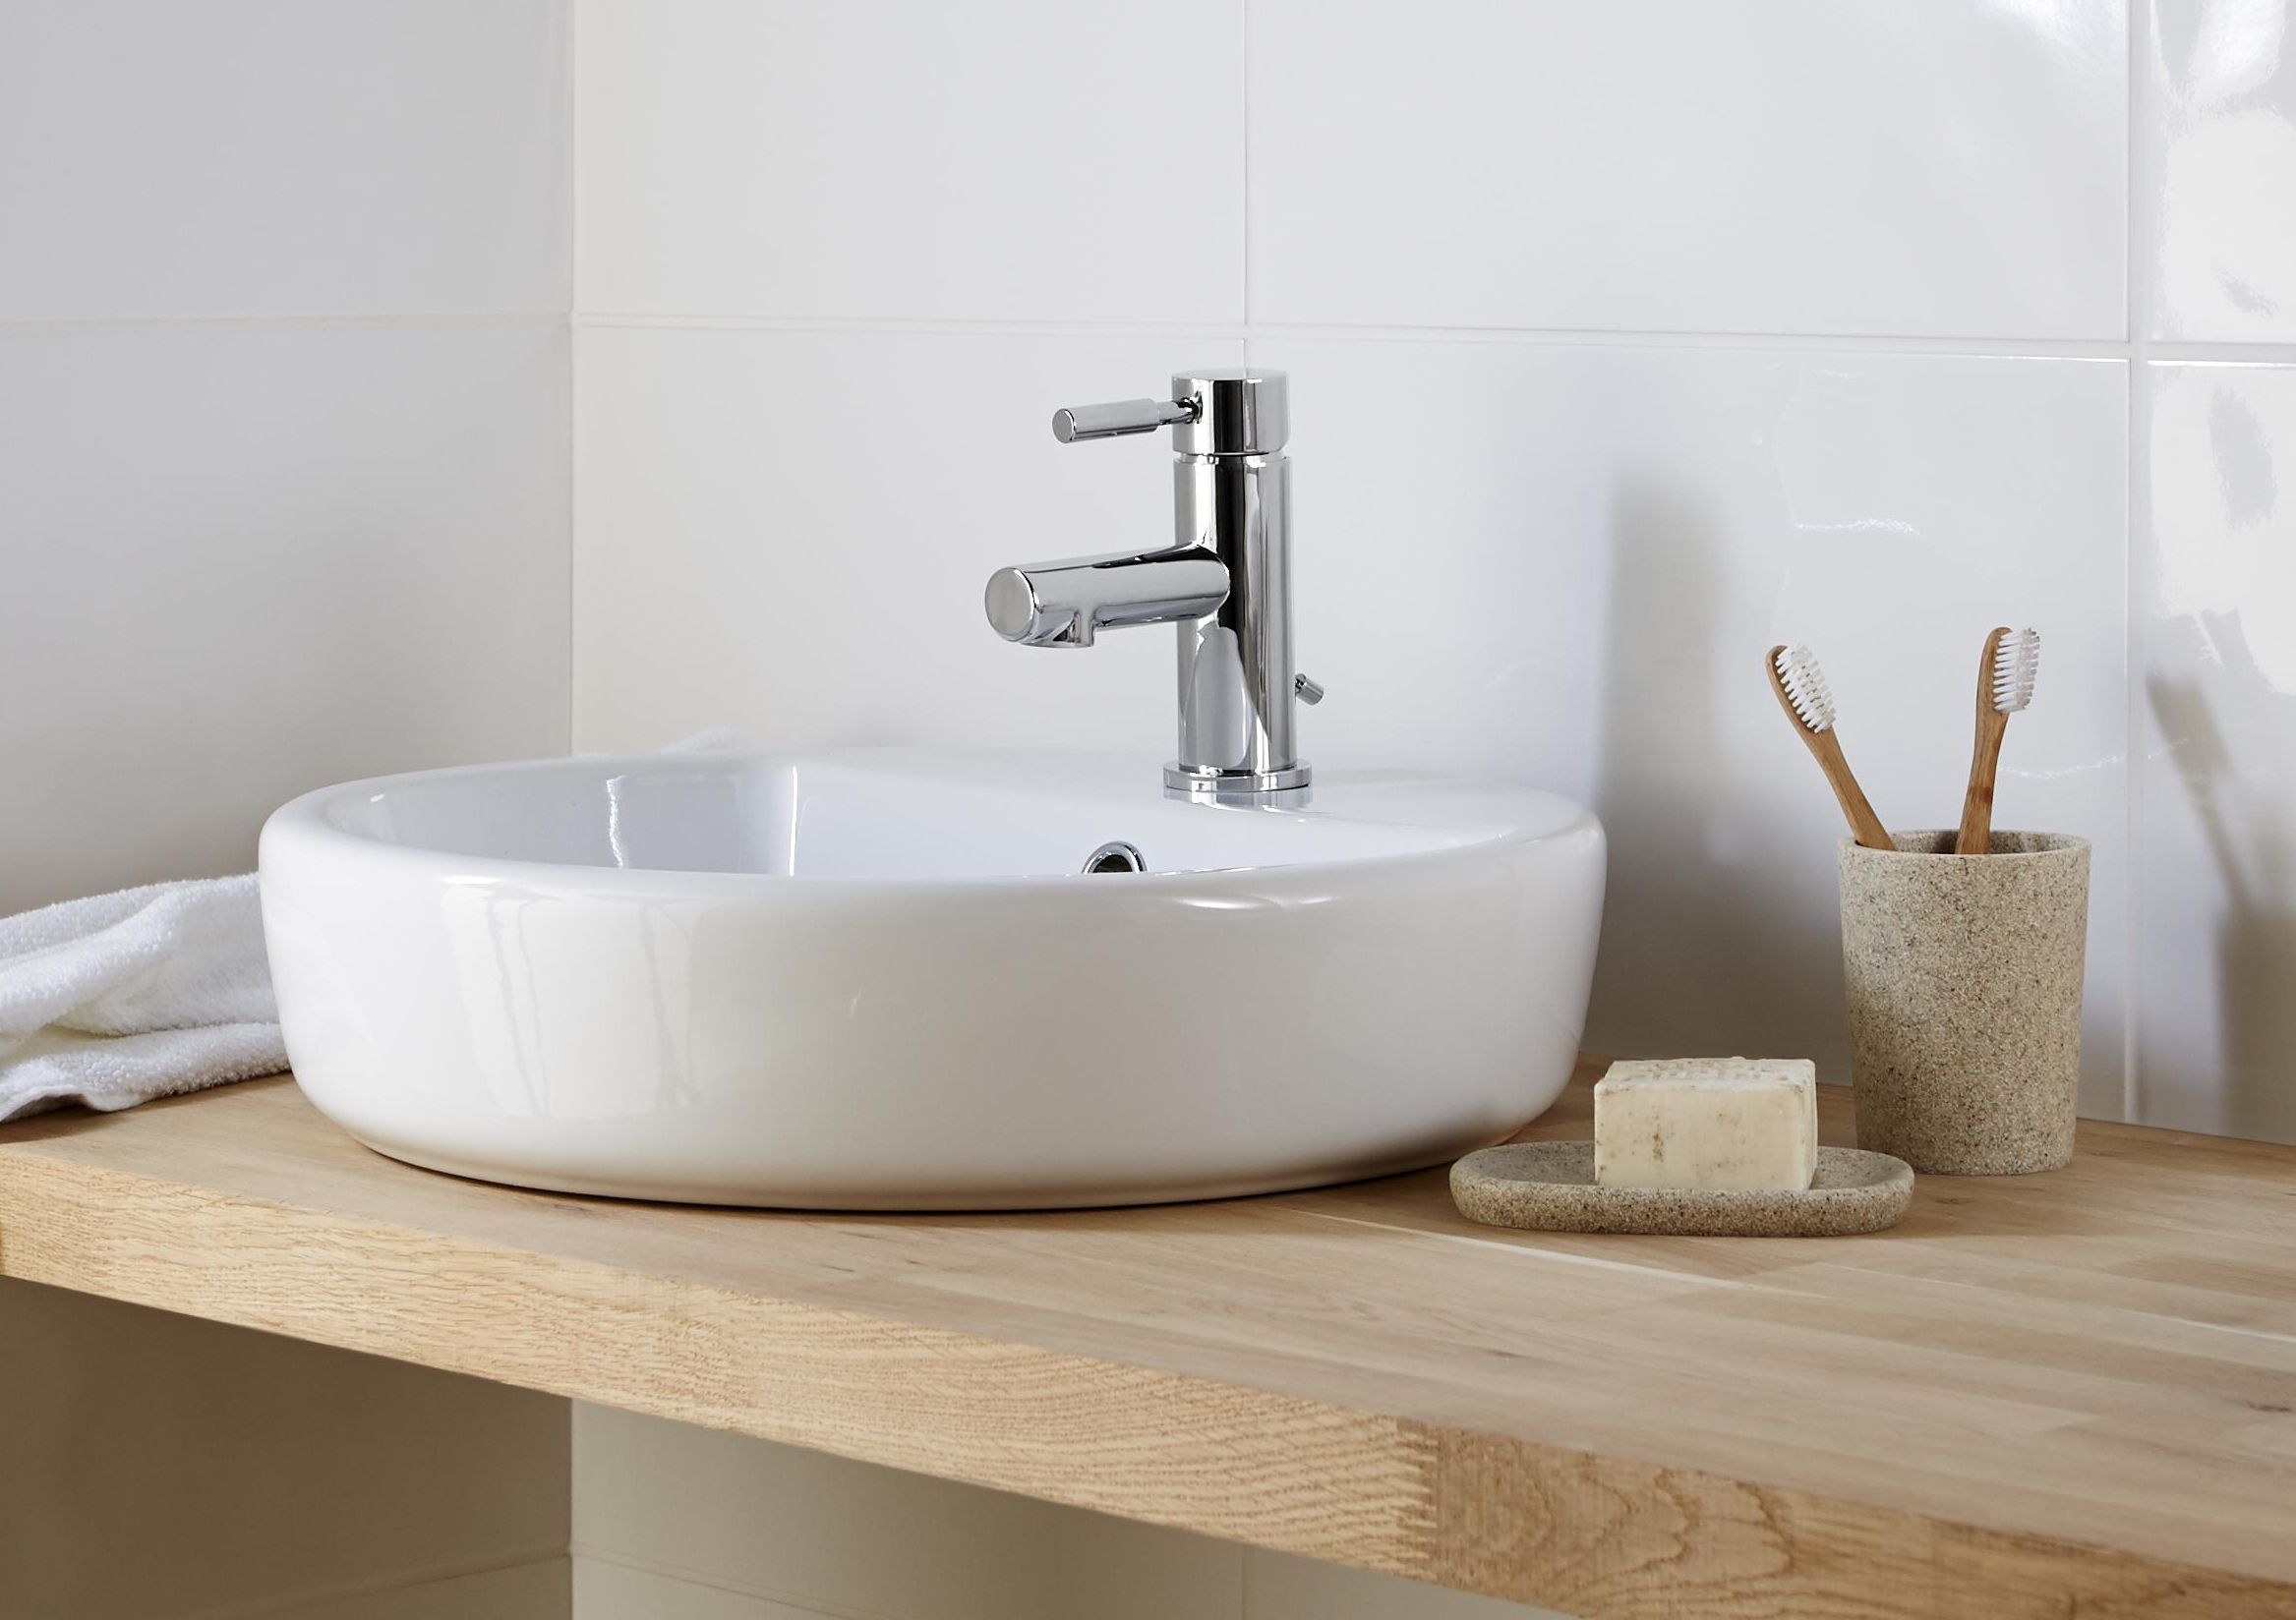 Bathroom Design B&Q bathroom basins | bathroom sinks | diy at b&q